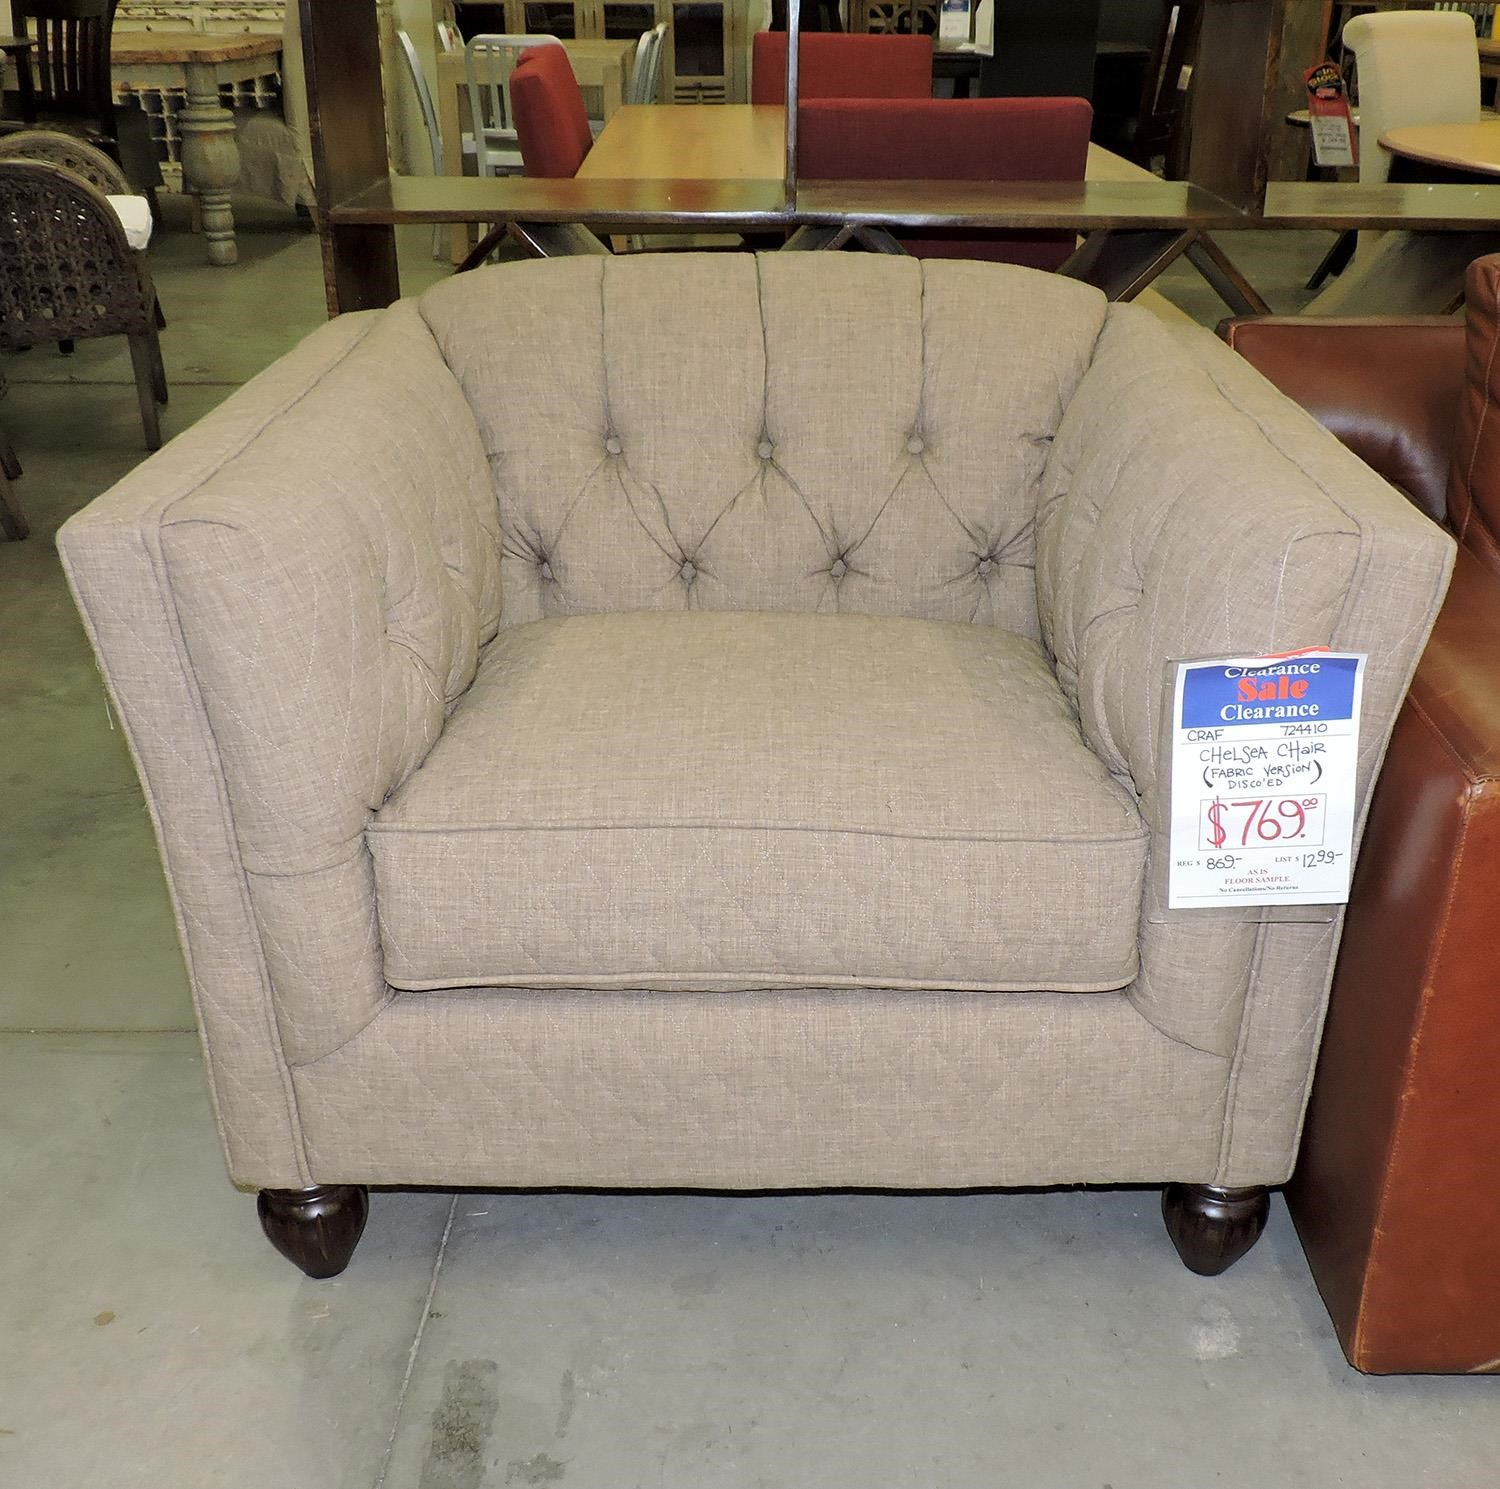 Craftmaster Clearance Chelsea Chair - Item Number: 140731391